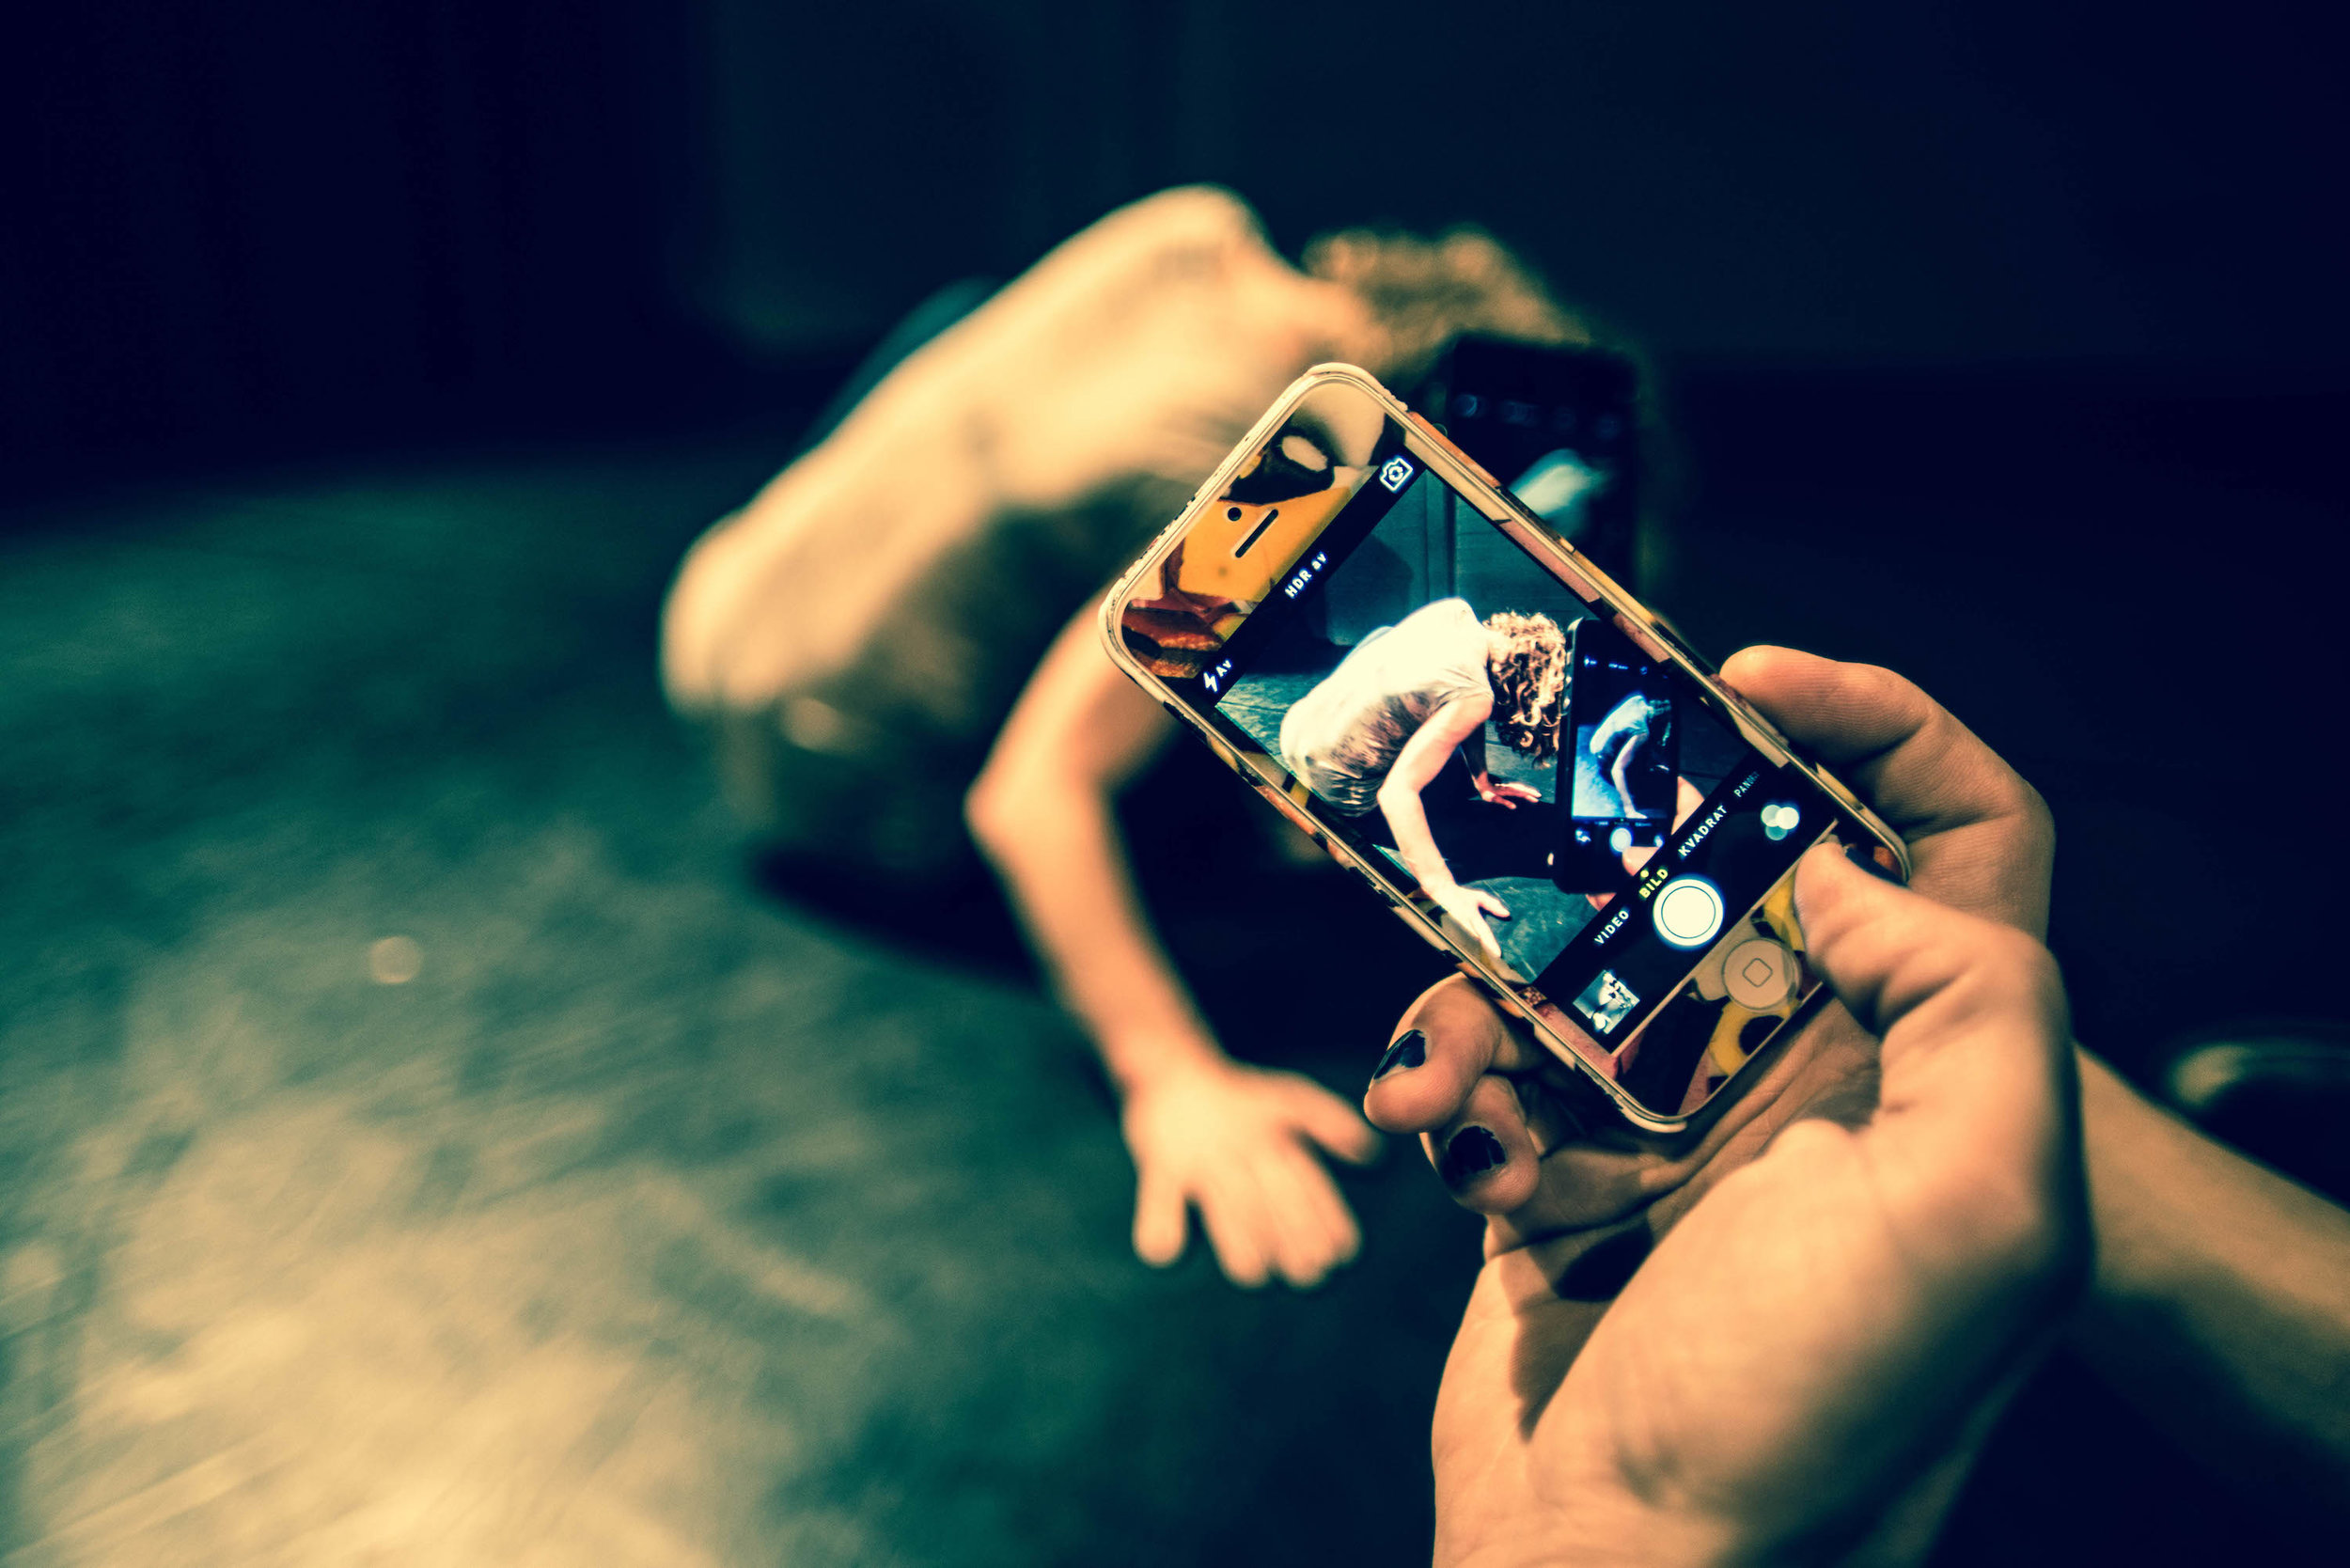 A hand holds a smartphone in foreground: Crain, visible through phone's camera, sits with back to camera, blonde curls covering face. (photo: Robbie Sweeny)